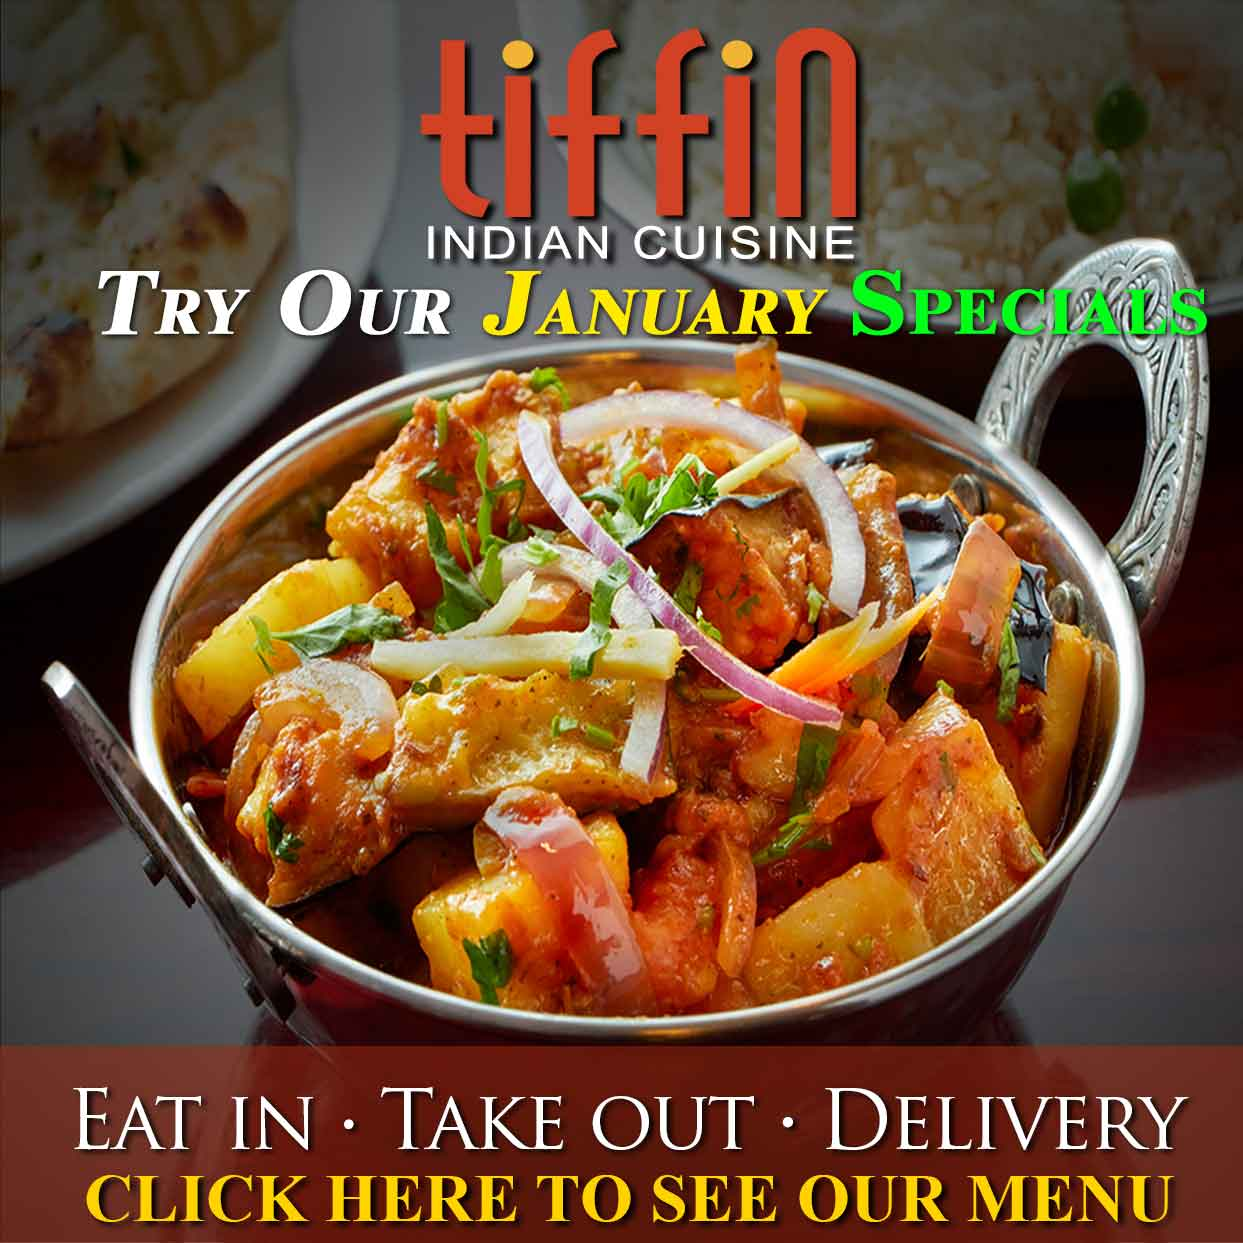 Indian Food Delivery to Abrahams Lowell Dartmouth Hills Bridgeport Blackhorse Executive Estates Park, Wayne, Chesterbrook Norristown, Broomall